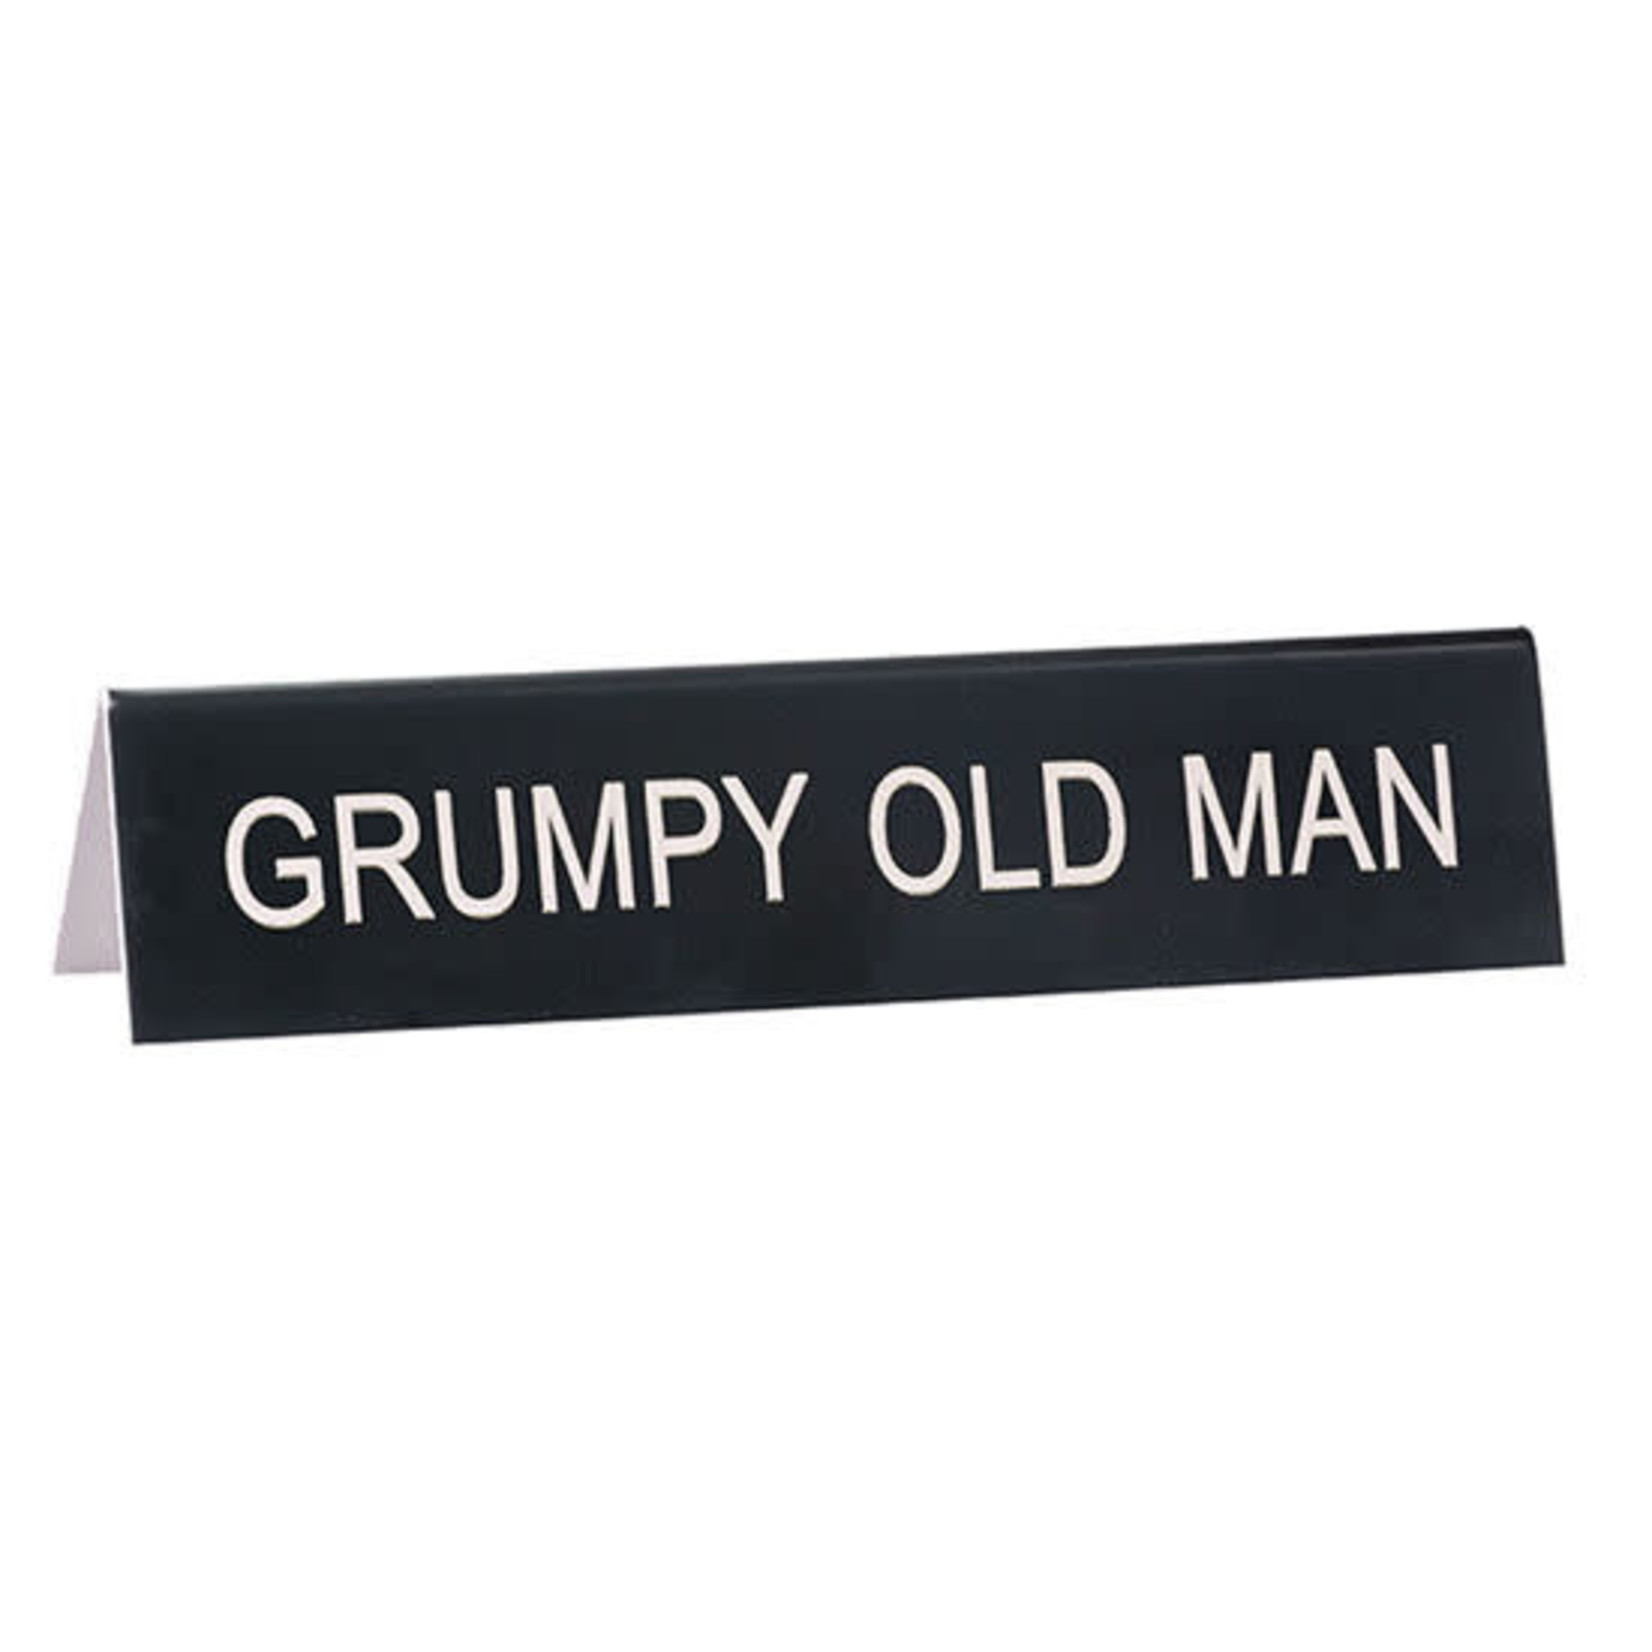 About Face Designs, Inc Sign: Grumpy Old Man Desk Sign